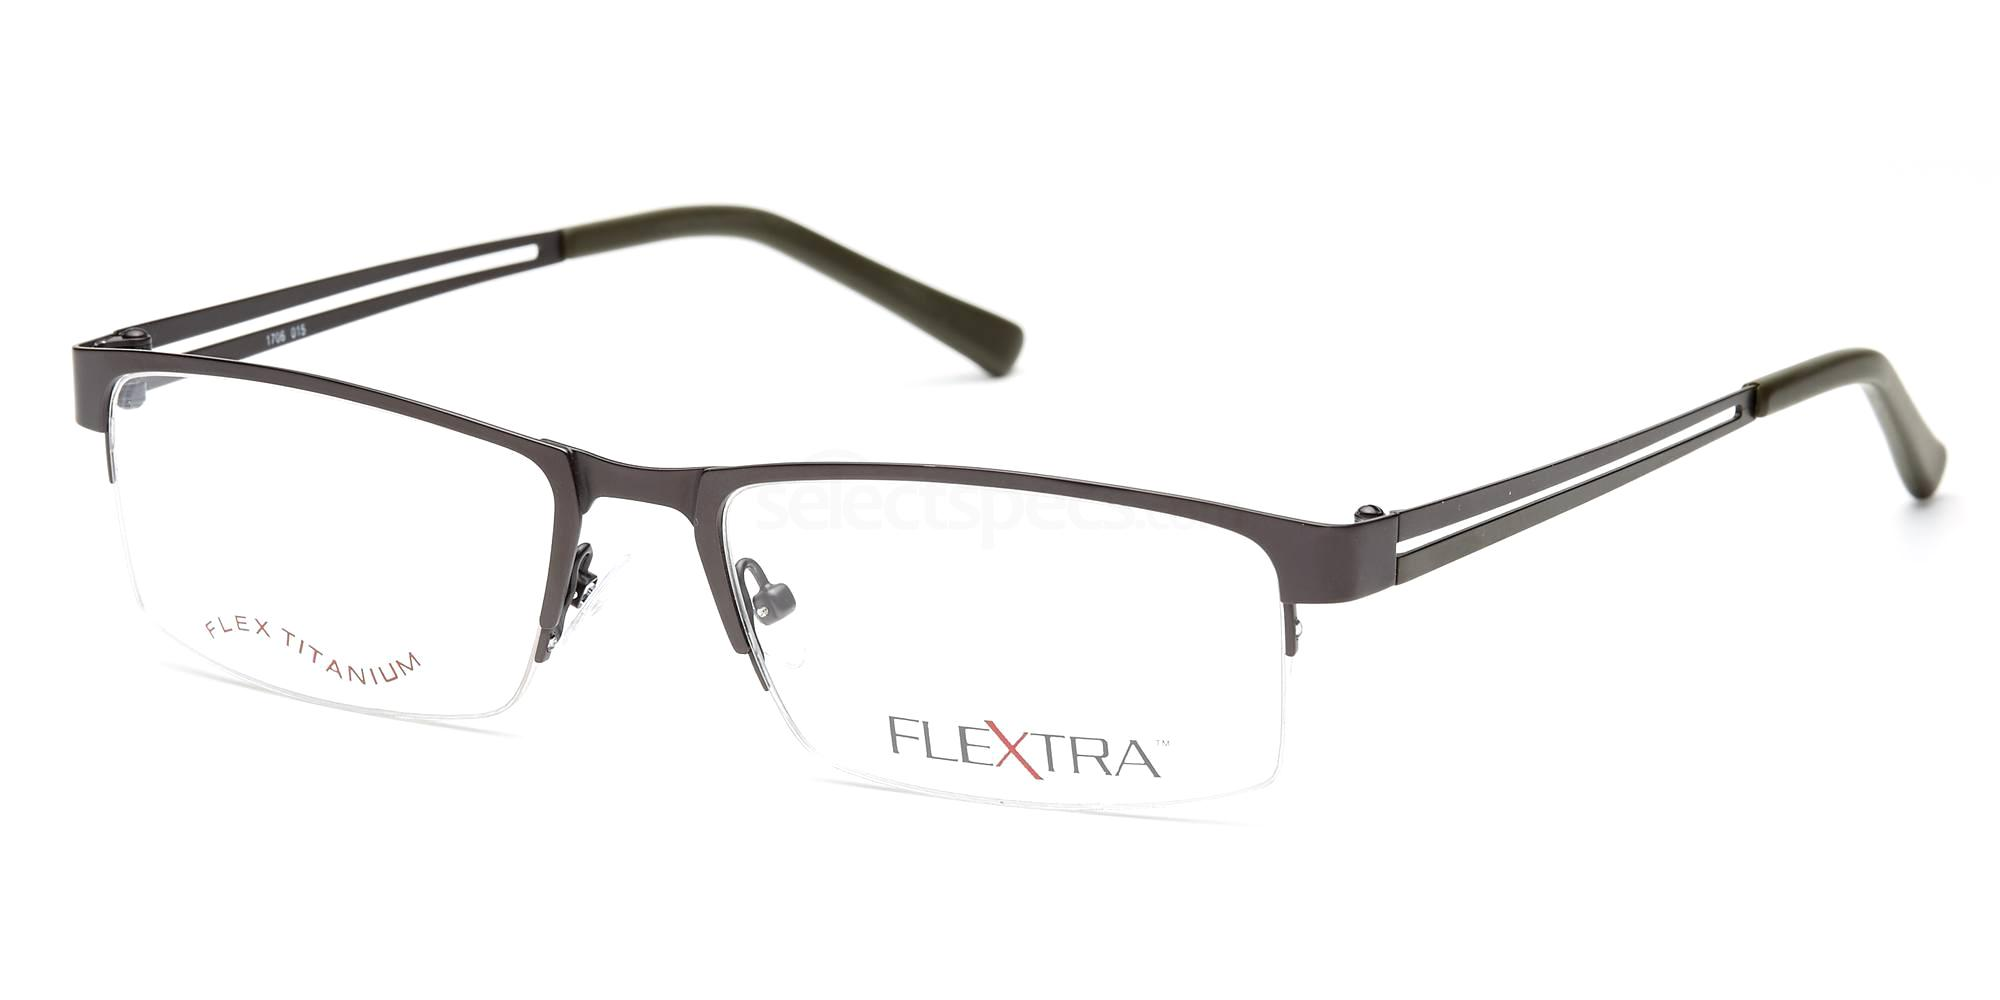 flextra glasses men